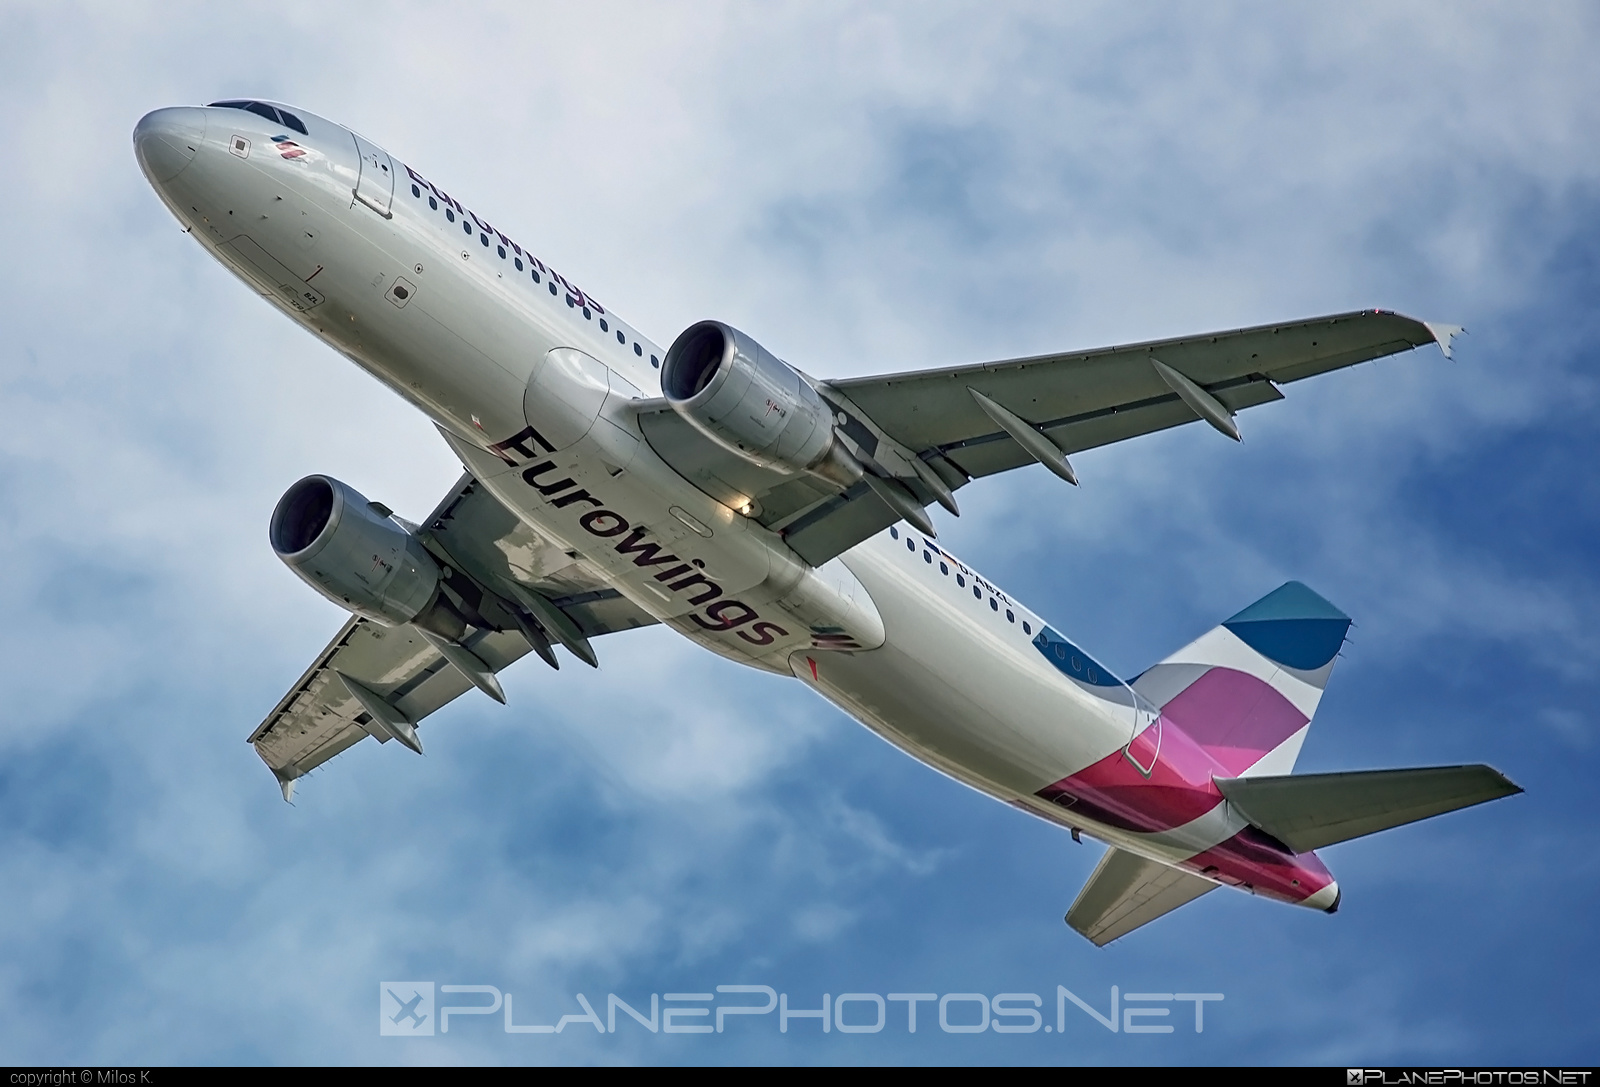 Airbus A320-216 - D-ABZL operated by Eurowings #a320 #a320family #airbus #airbus320 #eurowings